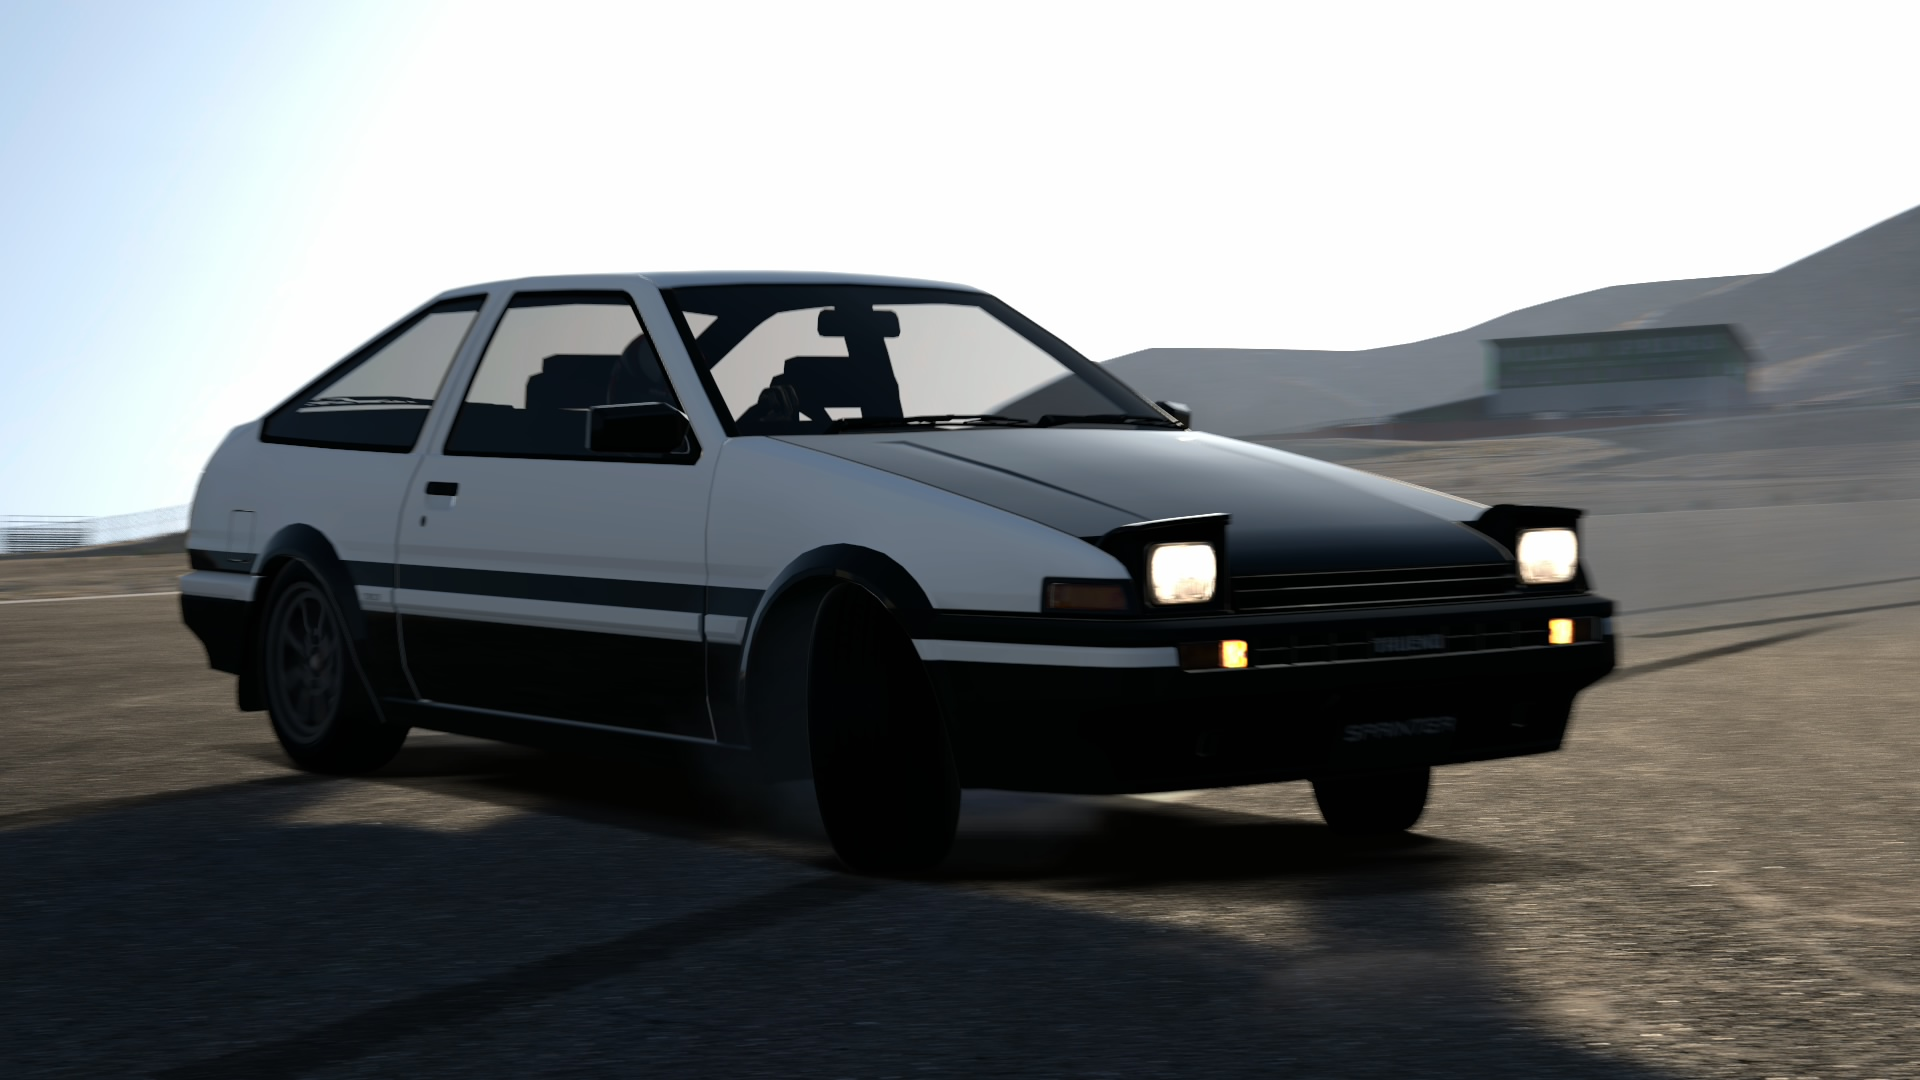 toyota ae86 sprinter trueno s shigeno ver drift by. Black Bedroom Furniture Sets. Home Design Ideas